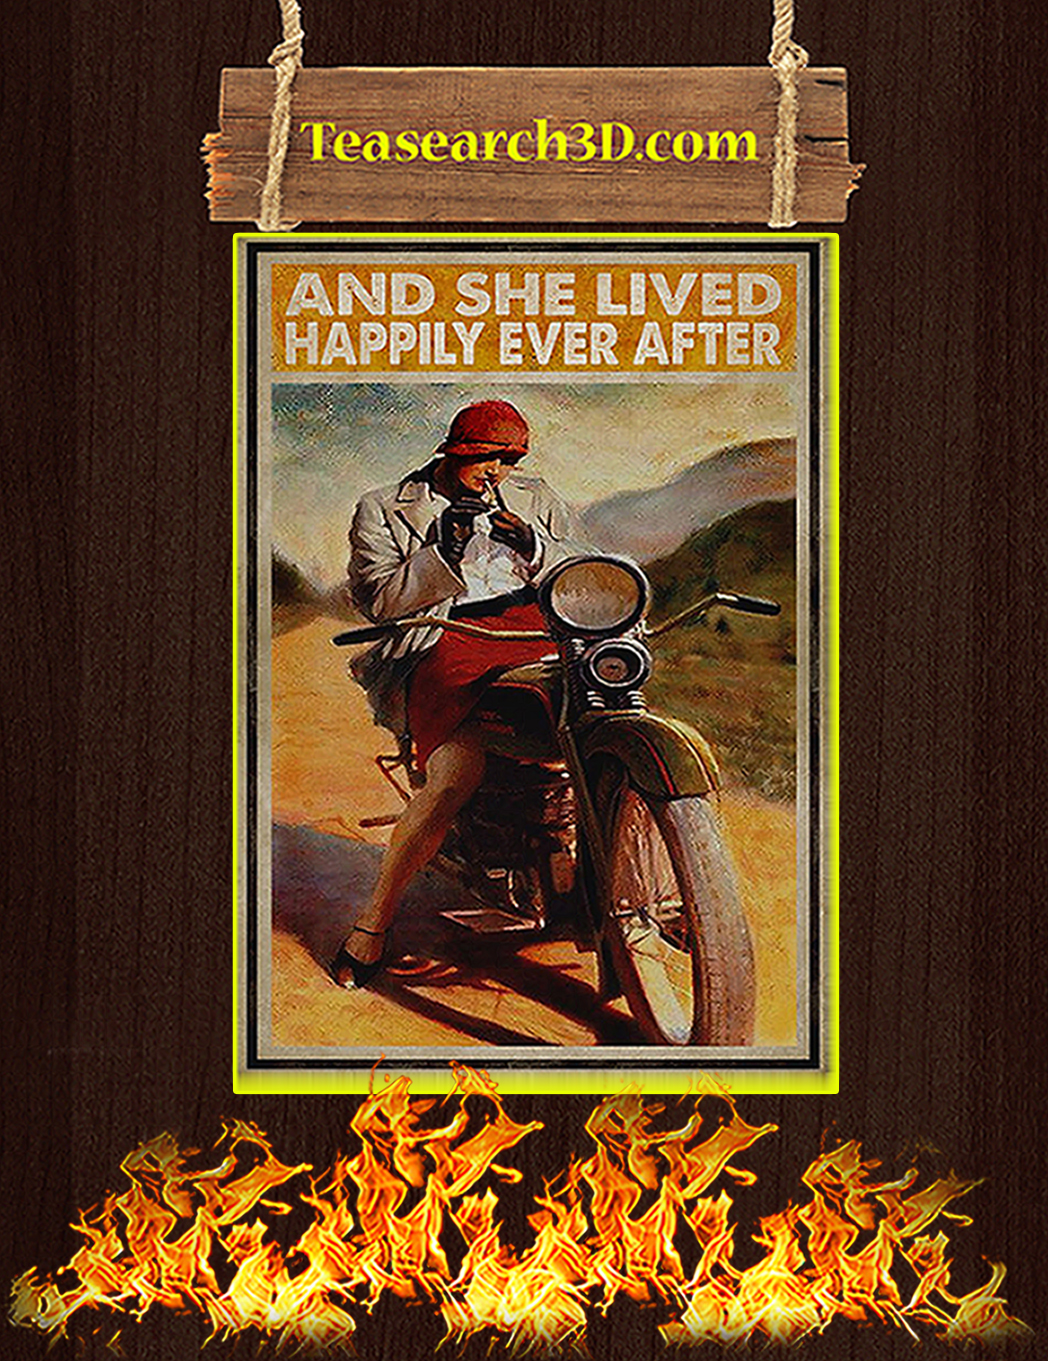 Biker and she lived happily ever after poster A1